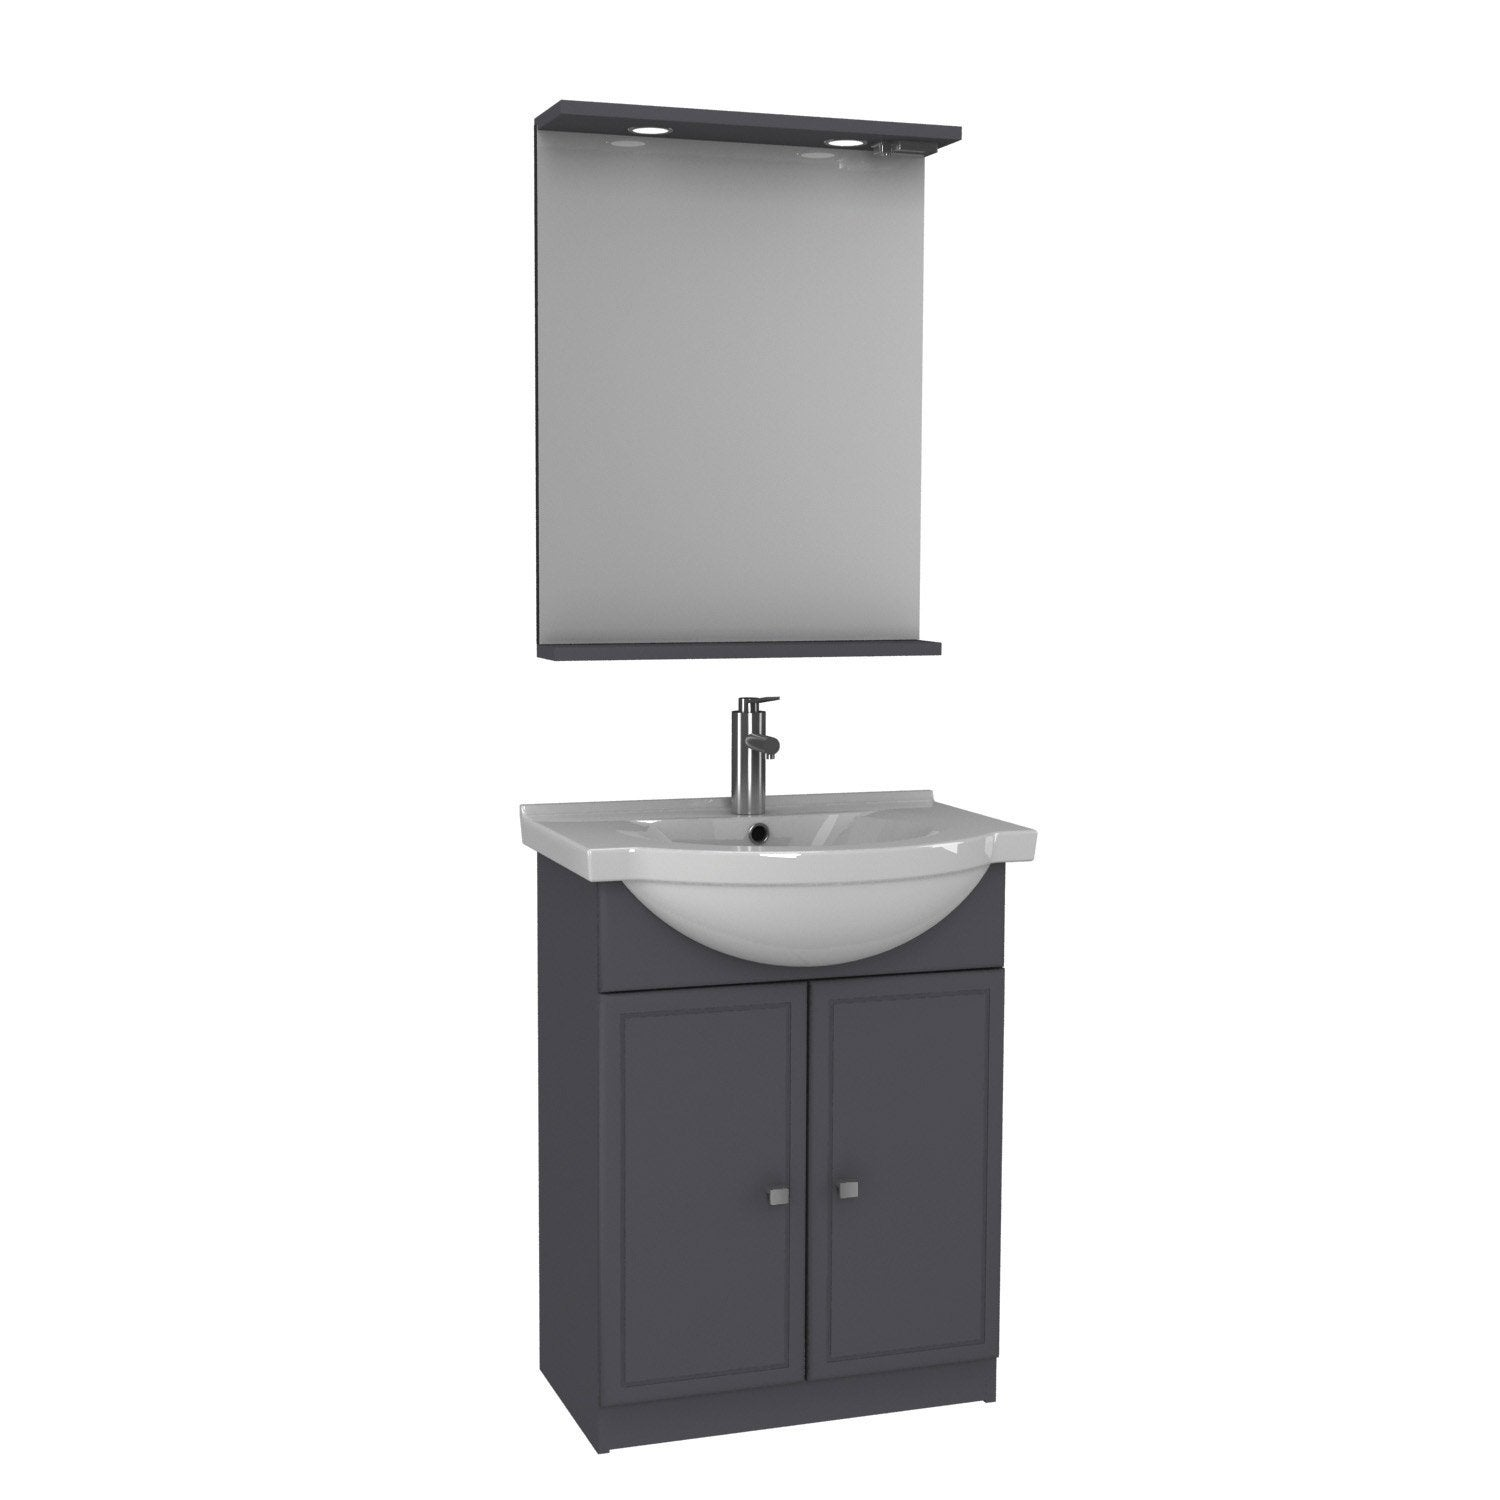 Meuble vasque 65 cm galice leroy merlin for Meuble salle de bain double vasque brico depot